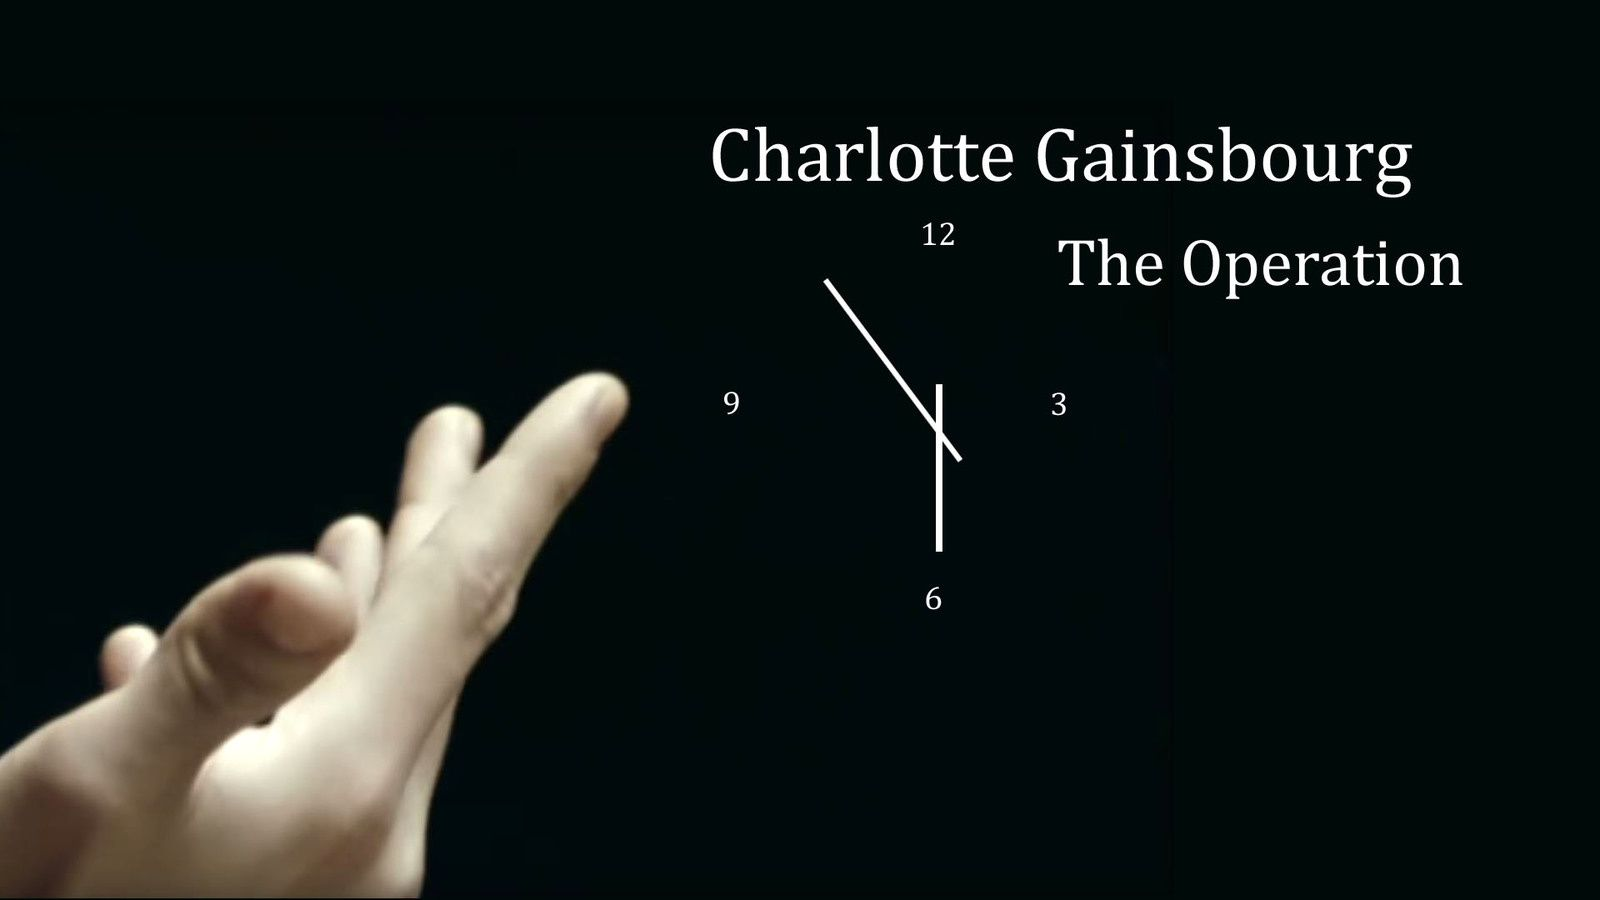 Charlotte Gainsbourg - The Opération